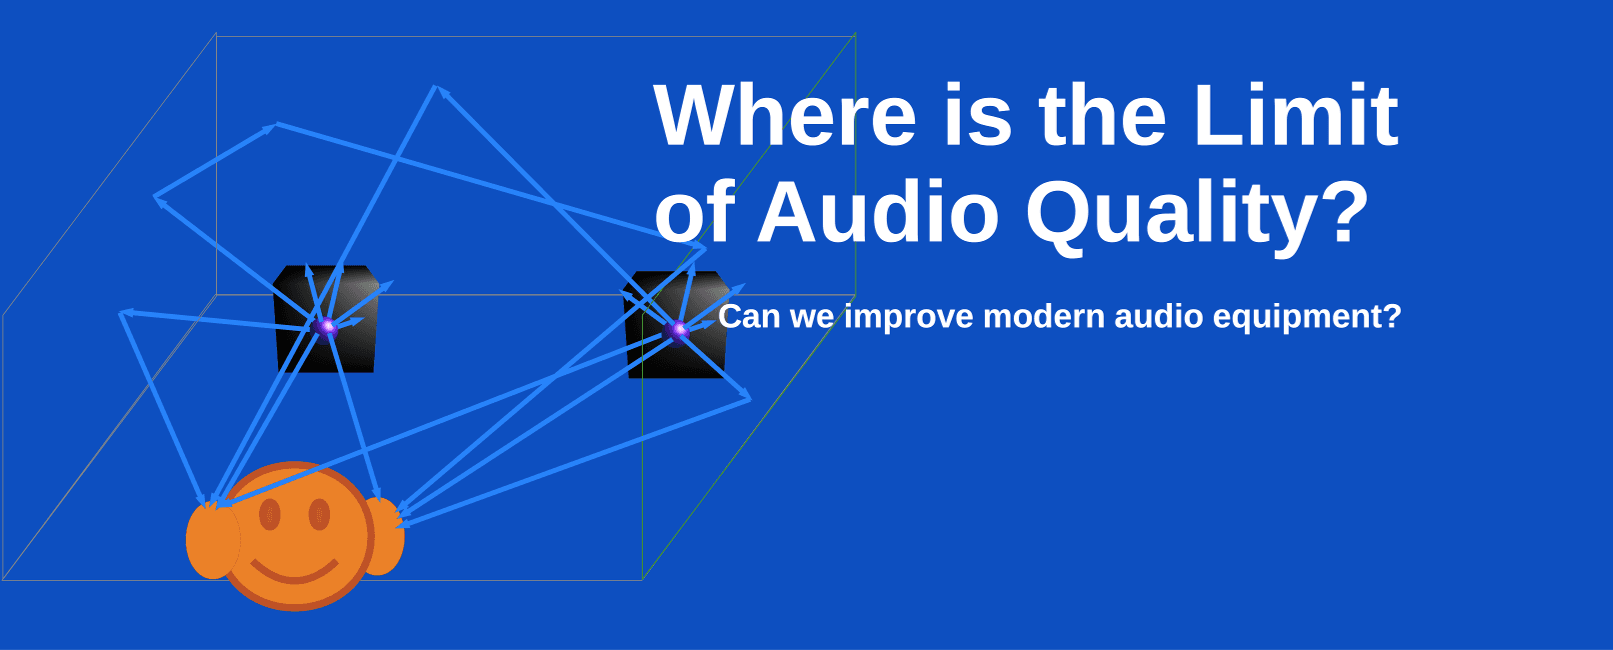 Where is the Limit of Audio Quality